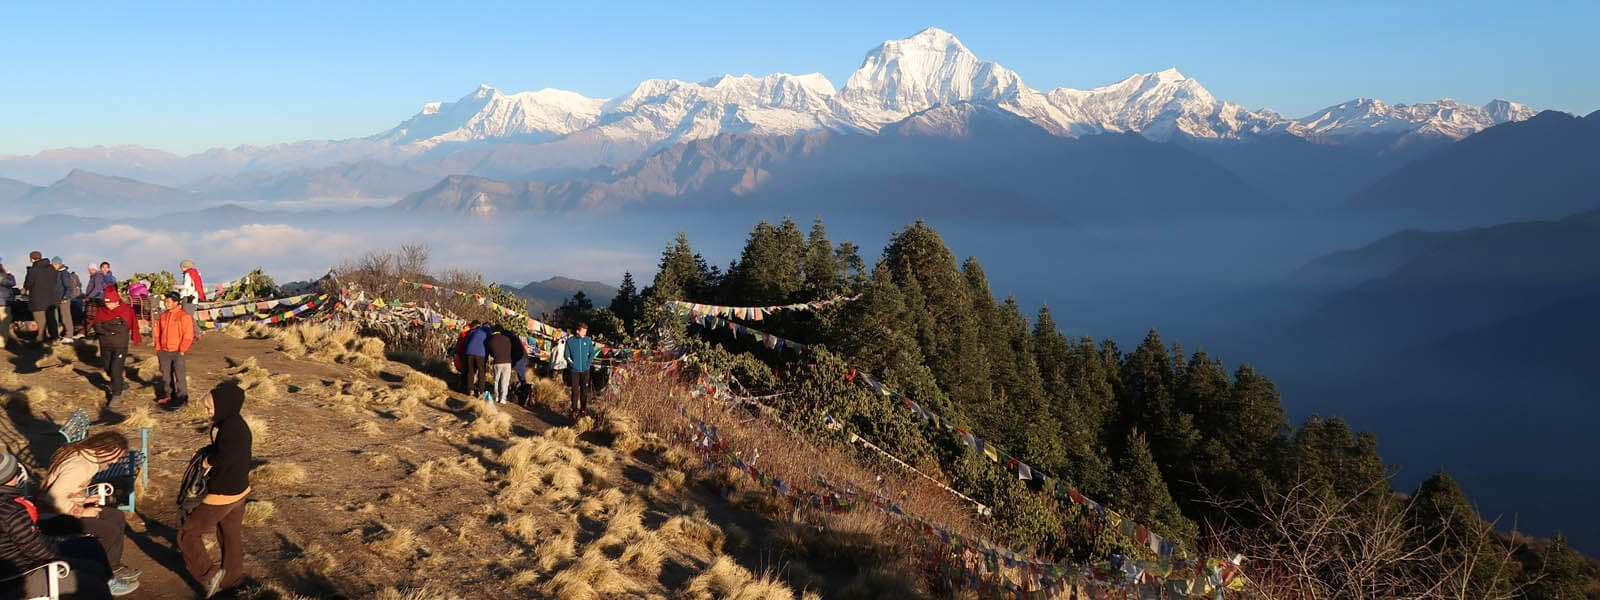 One of the world's classic pilgrimages trekking around the entire Annapurnarange